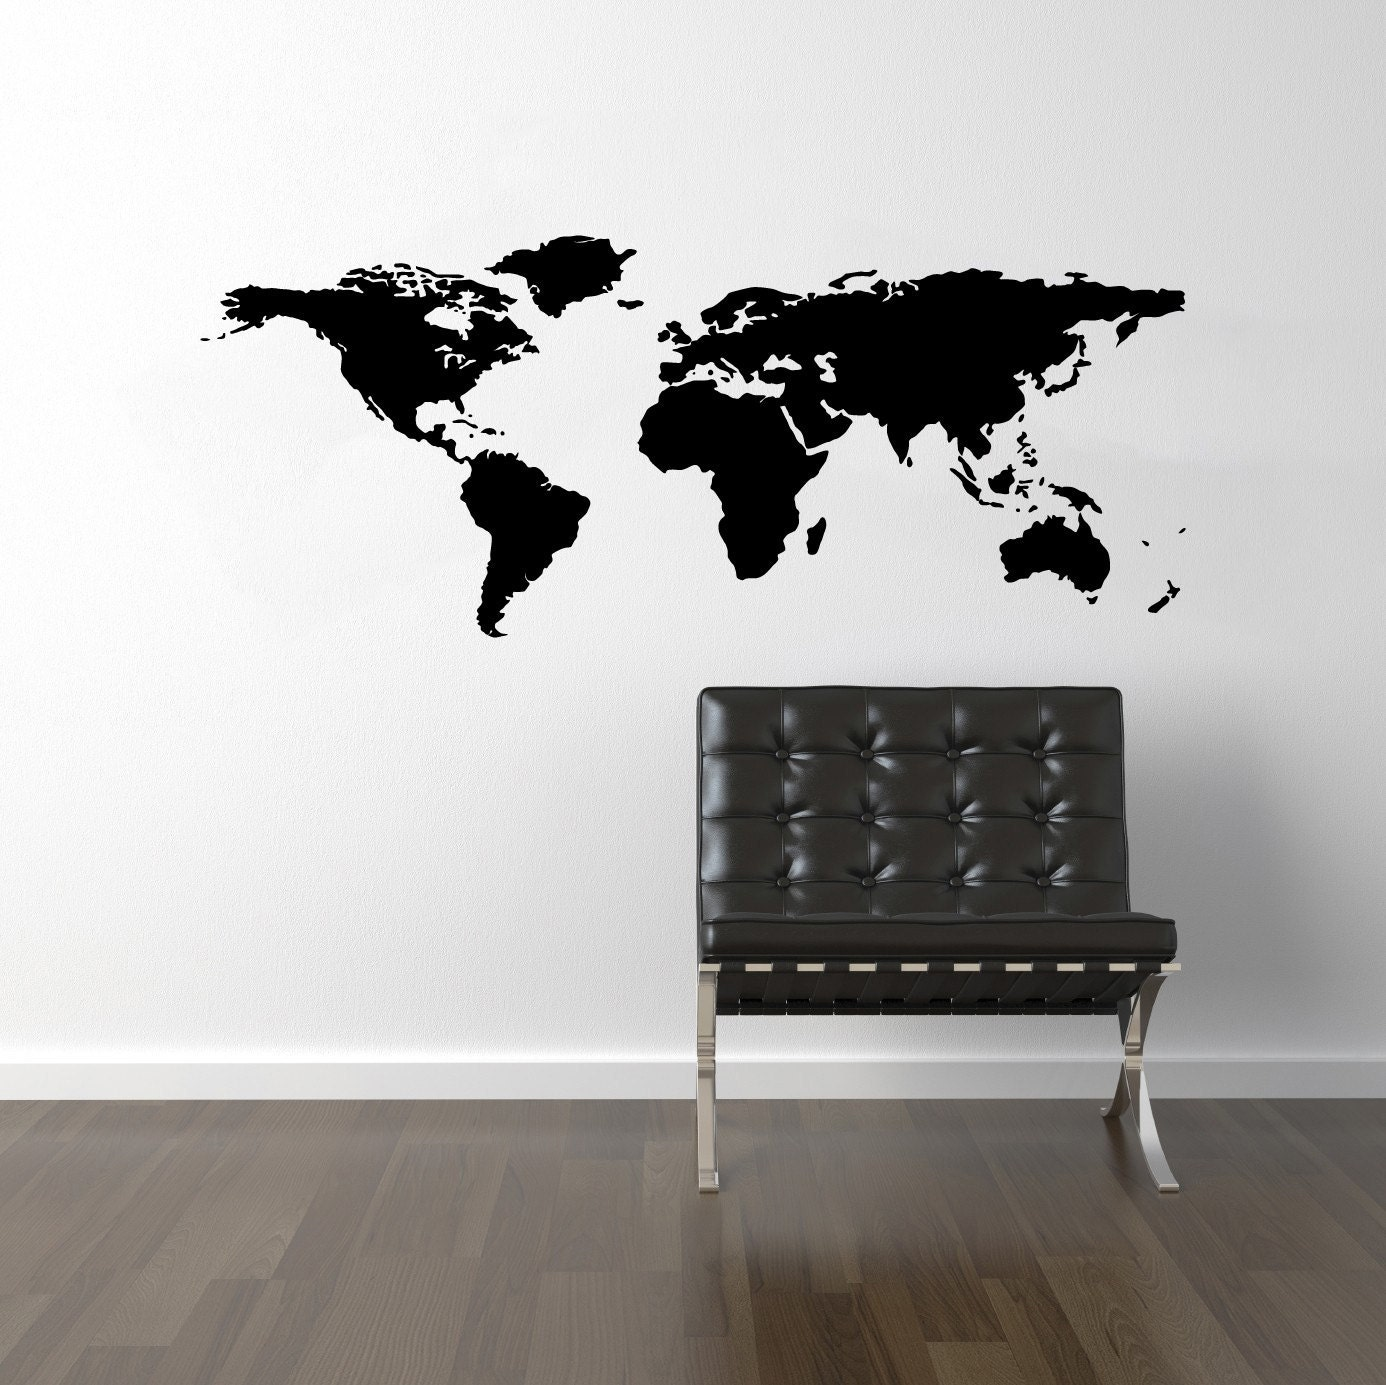 world map wall decal world map decal world decal by decallab pics photos world map wall stickers